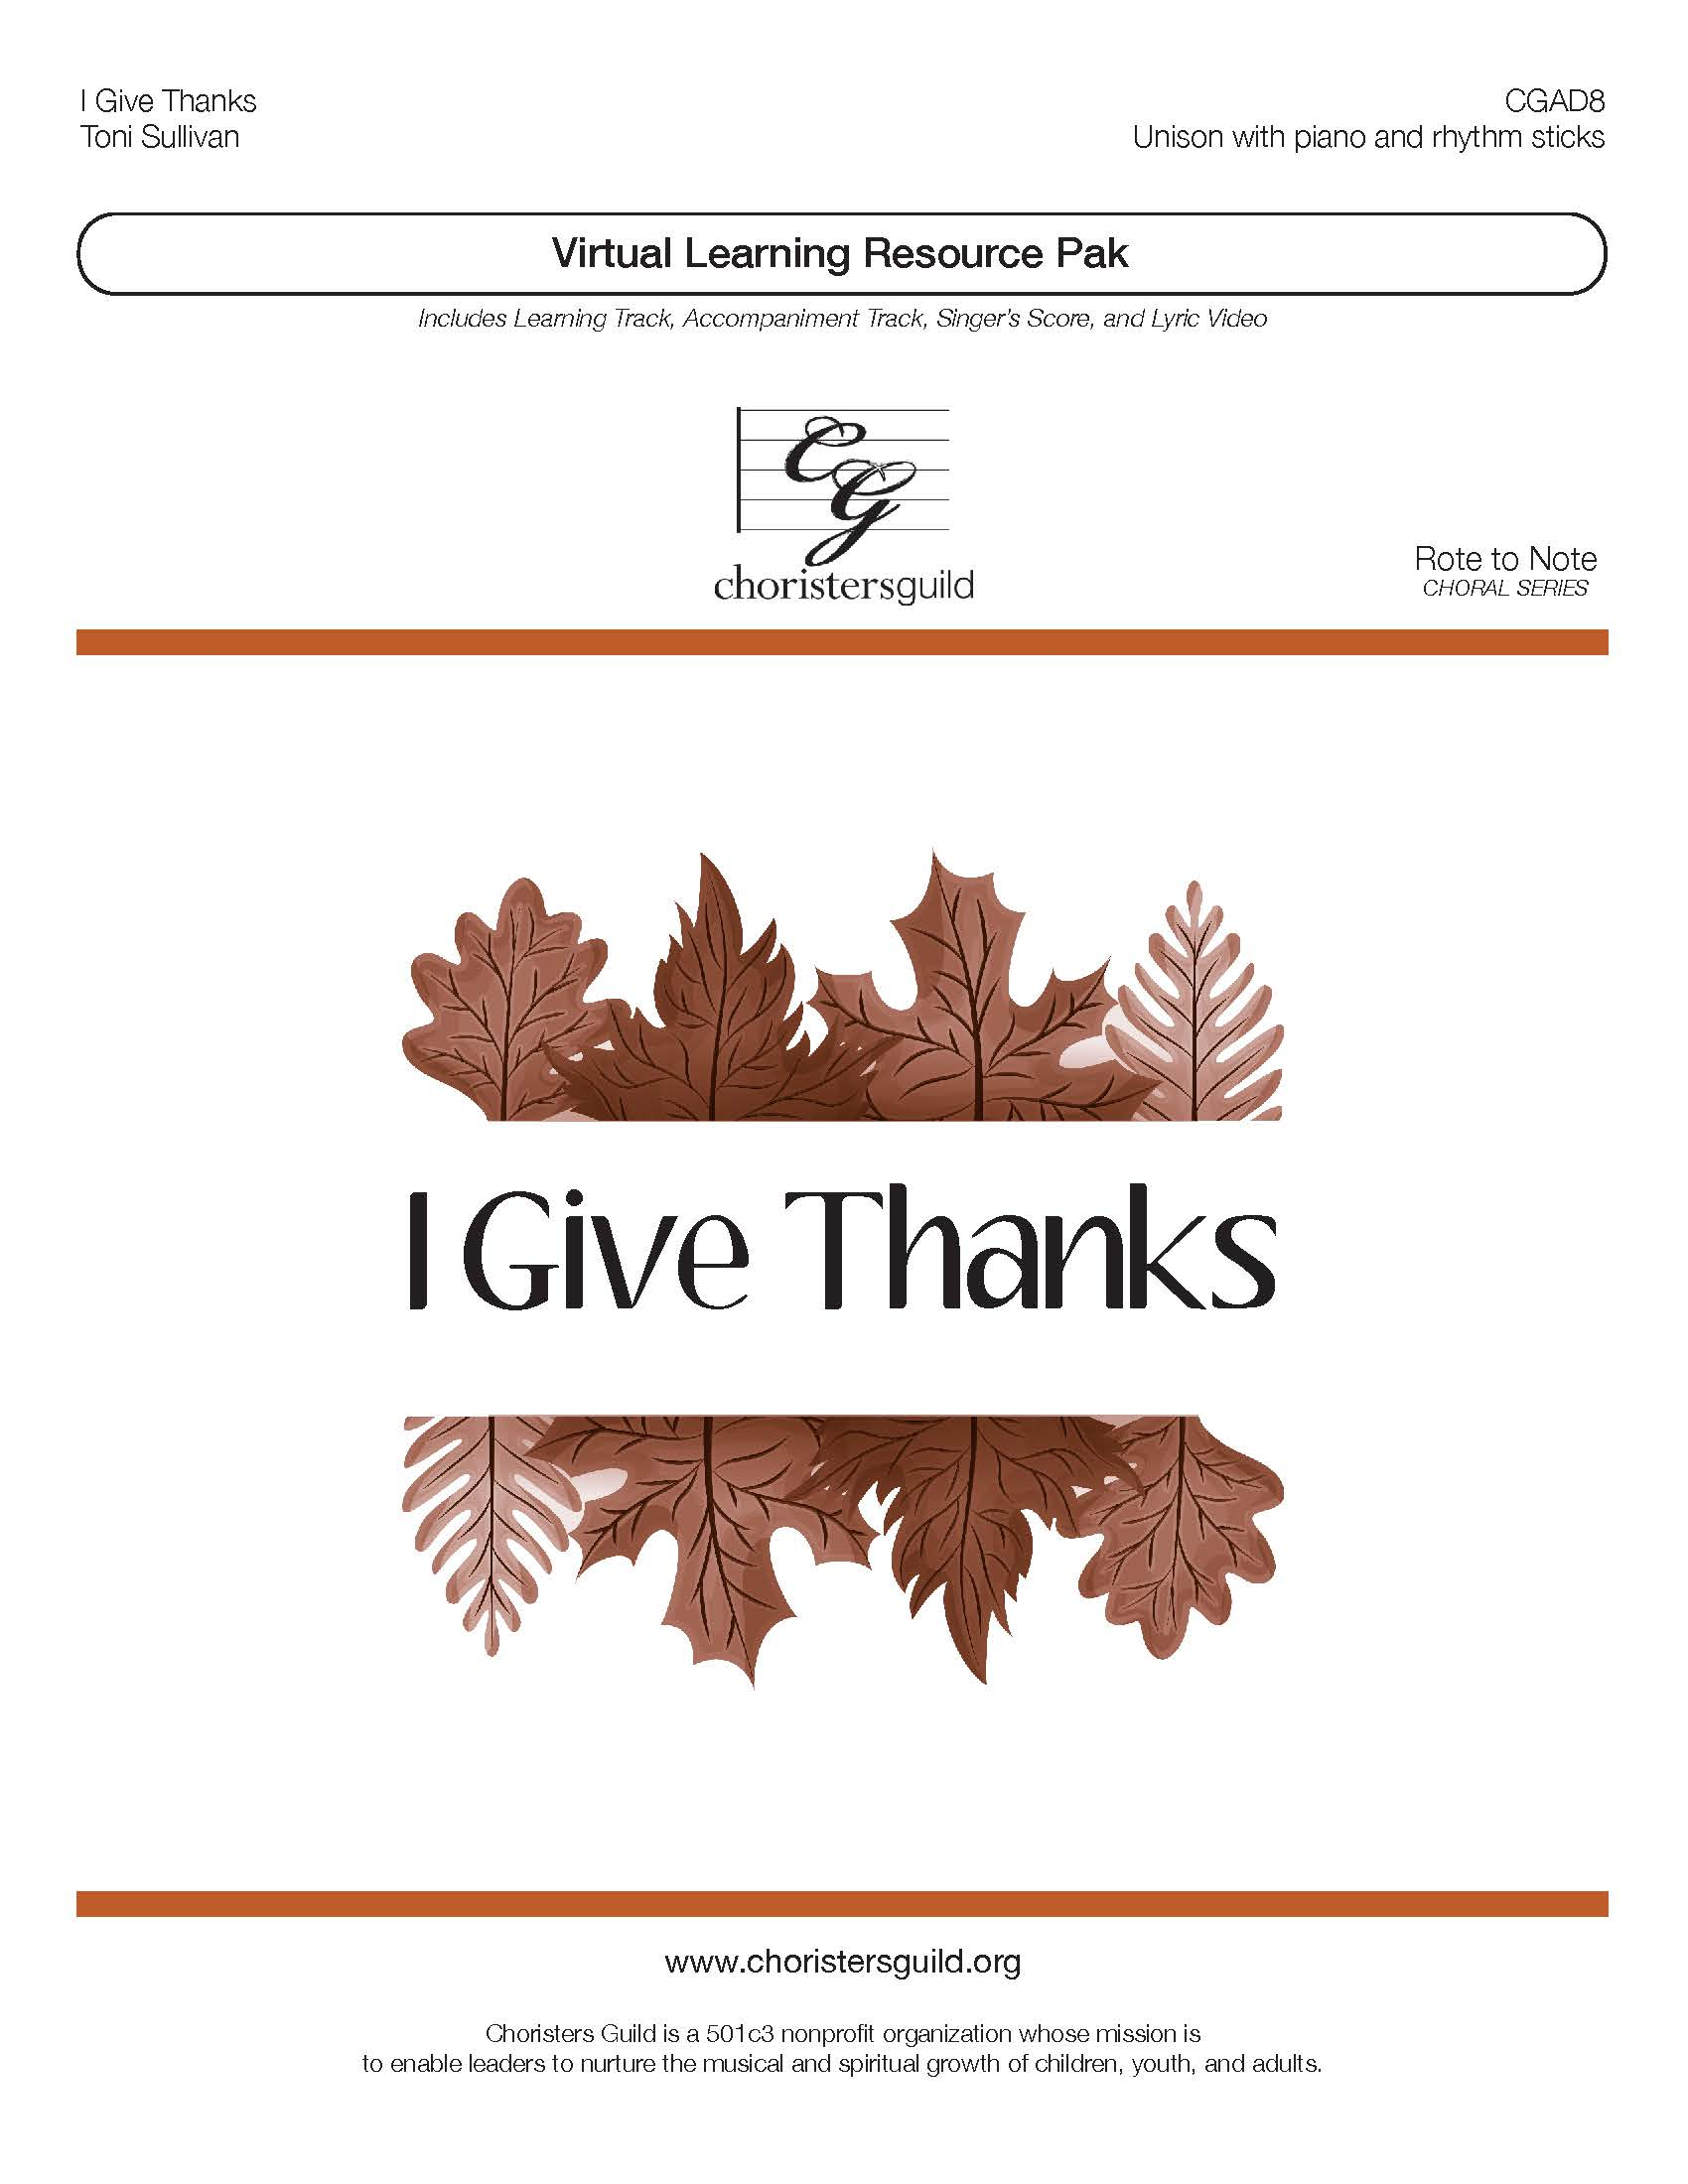 I Give Thanks (Virtual Learning Resource Pak) - Unison